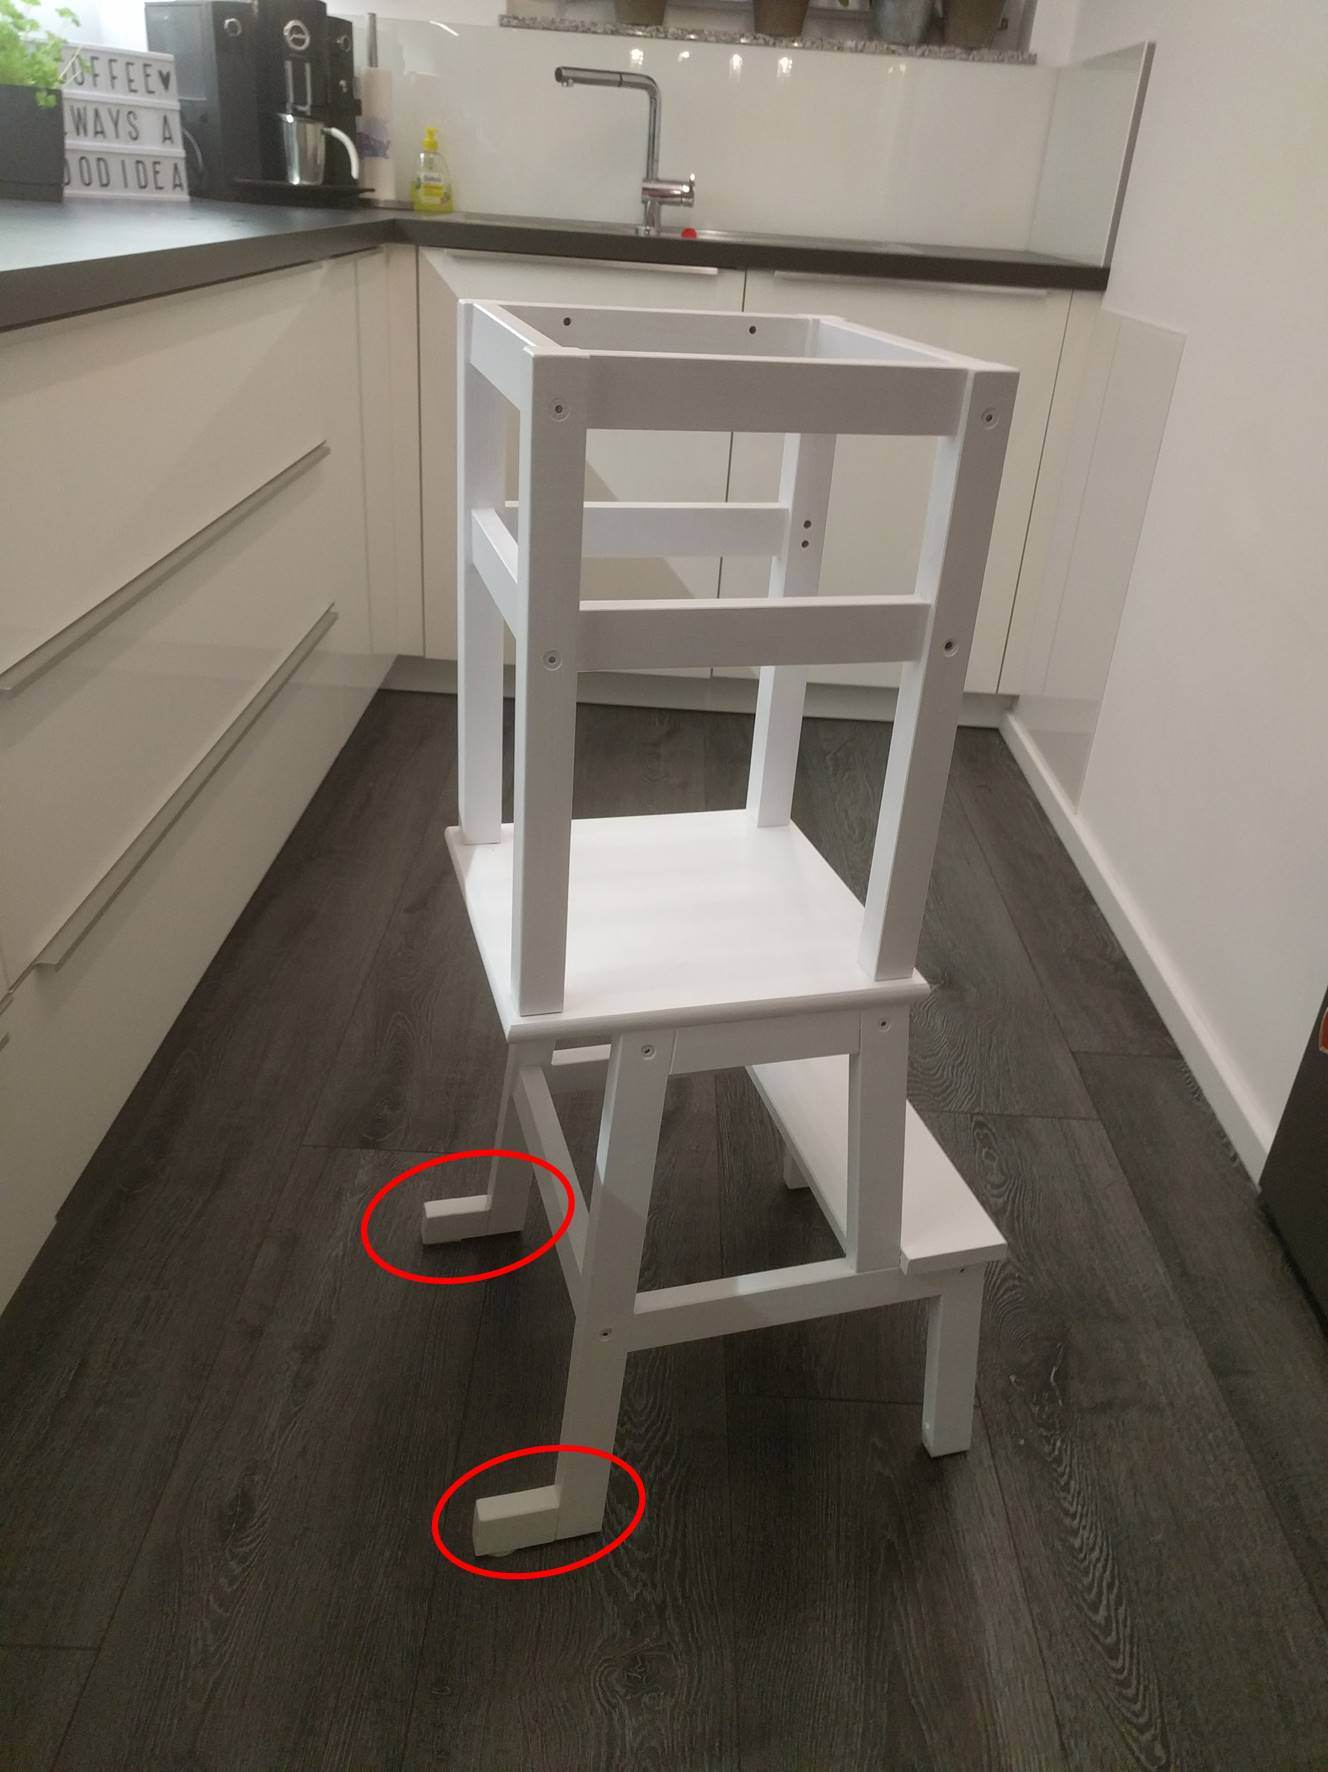 Toddler Kitchen Helper Ikea